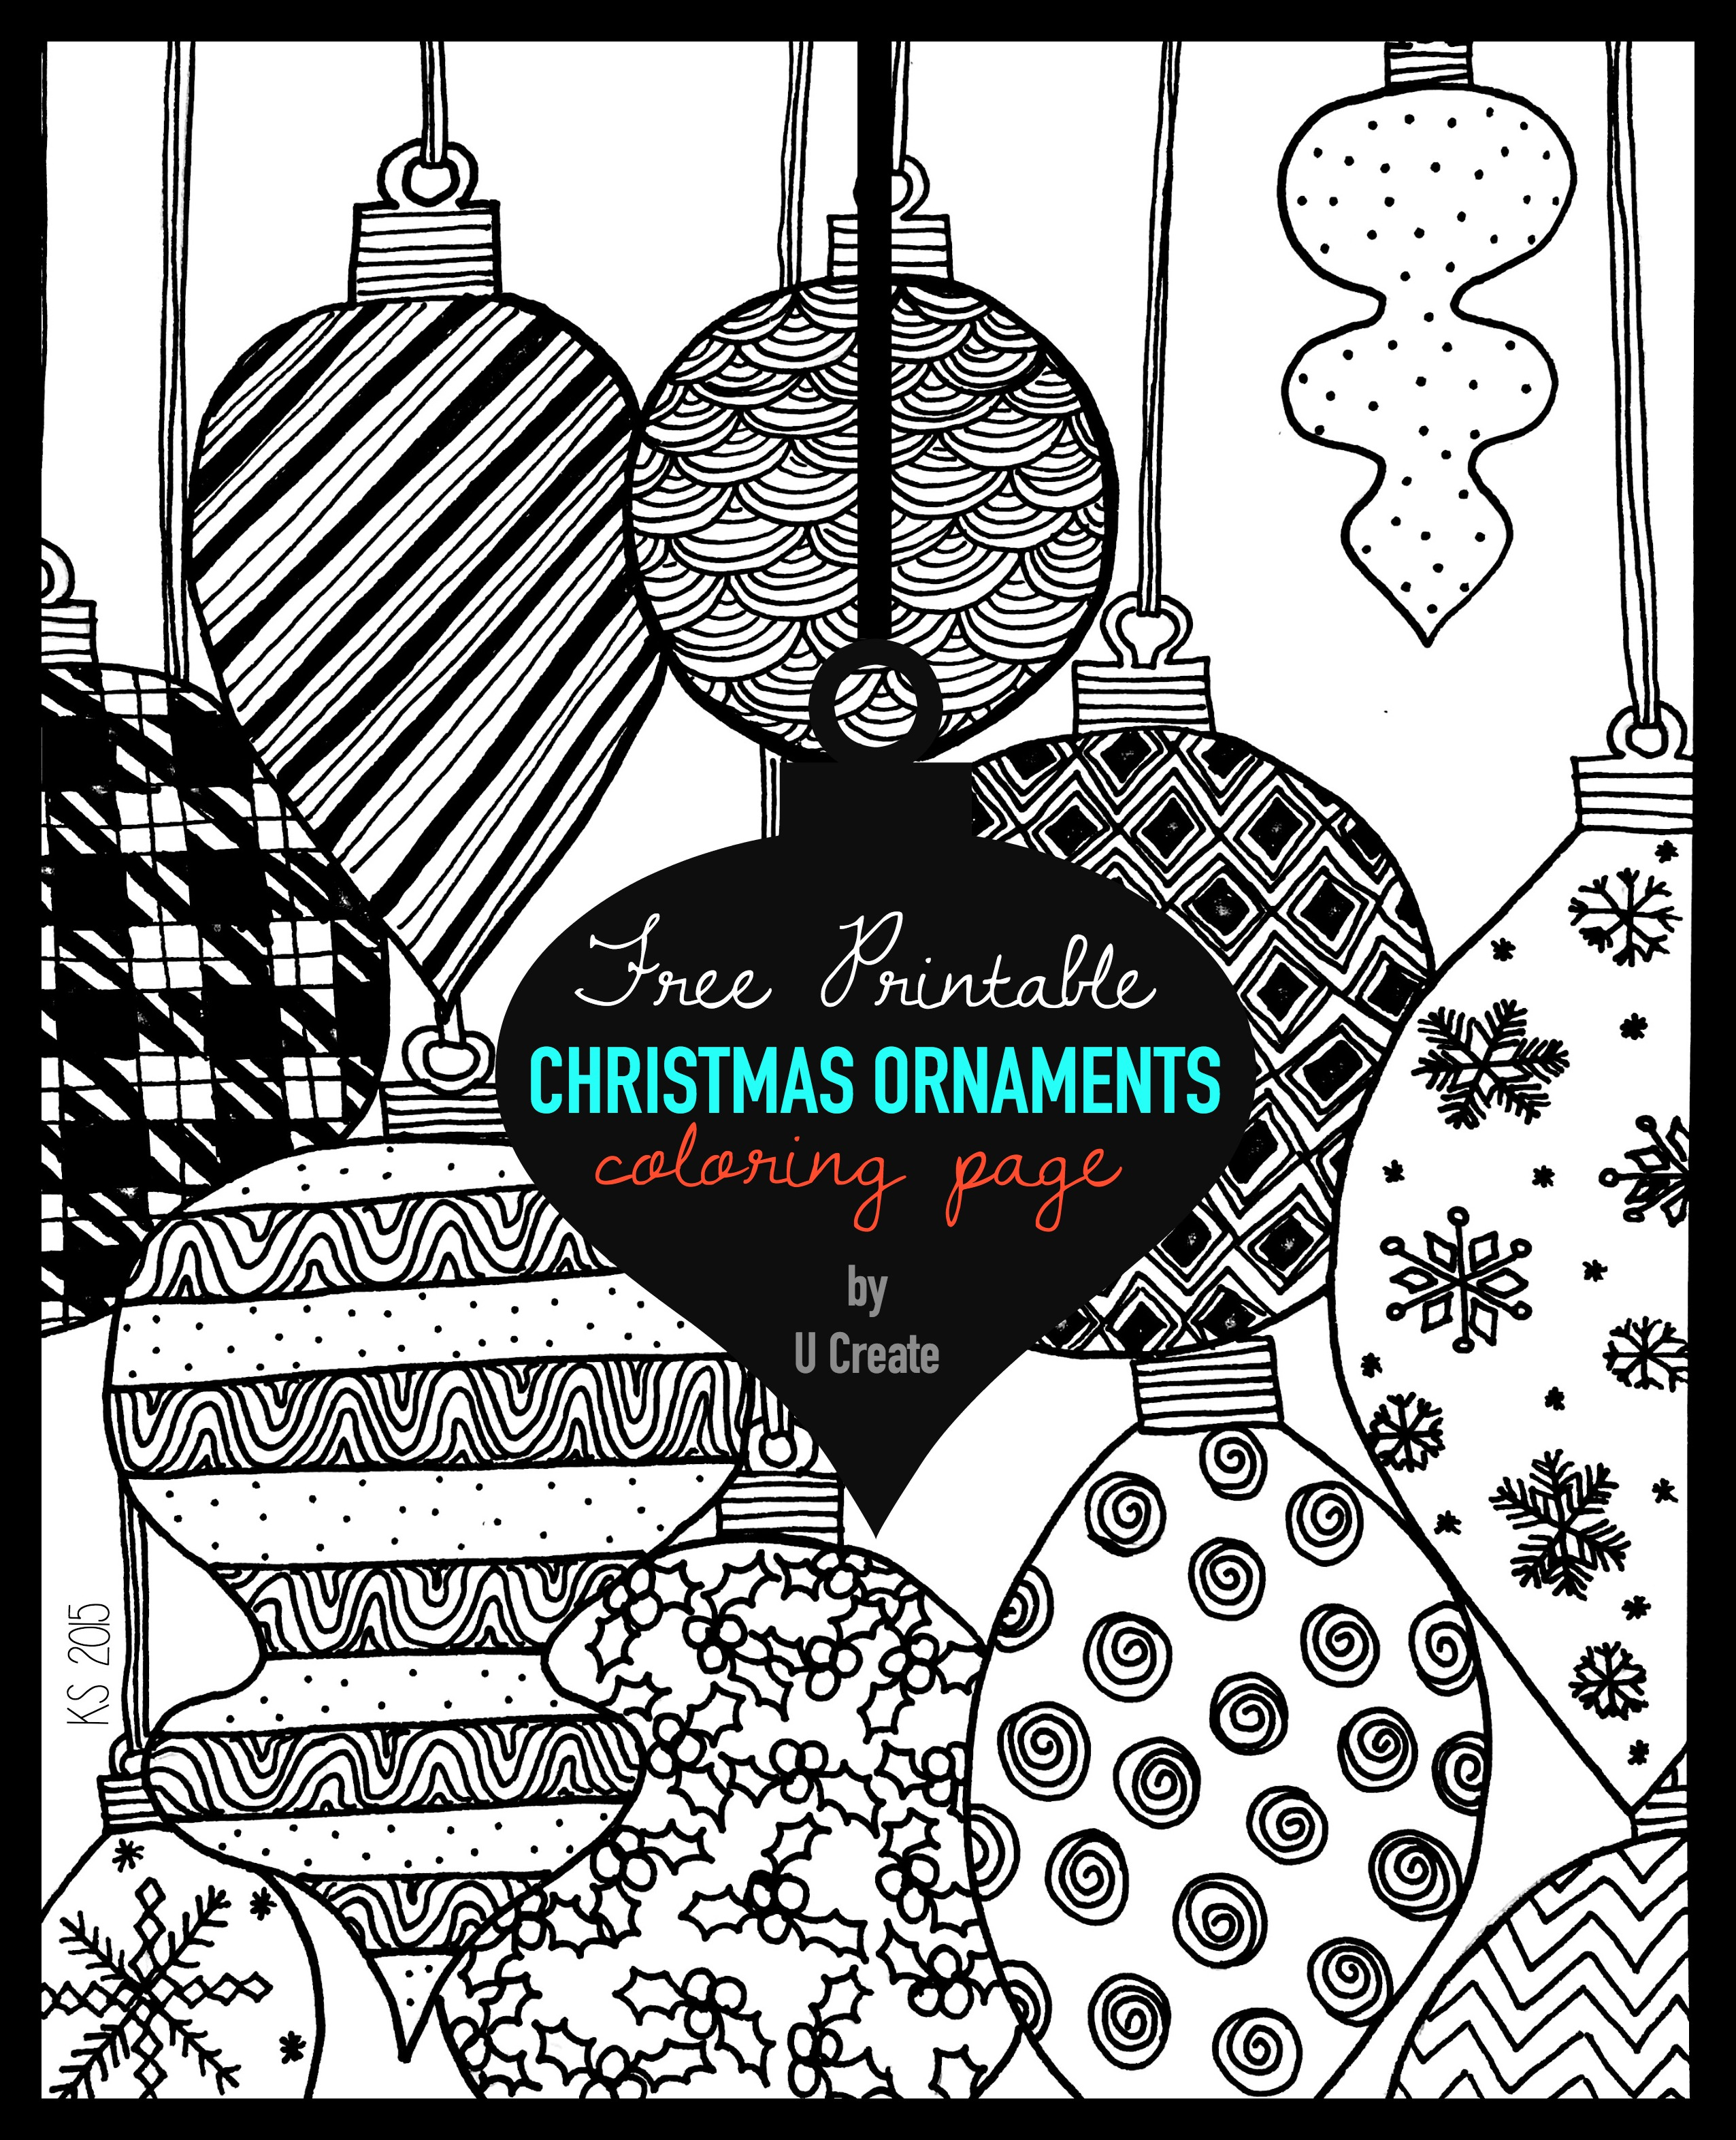 picture relating to Christmas Ornaments Coloring Pages Printable identify Xmas Ornaments Grownup Coloring Webpage - U Deliver